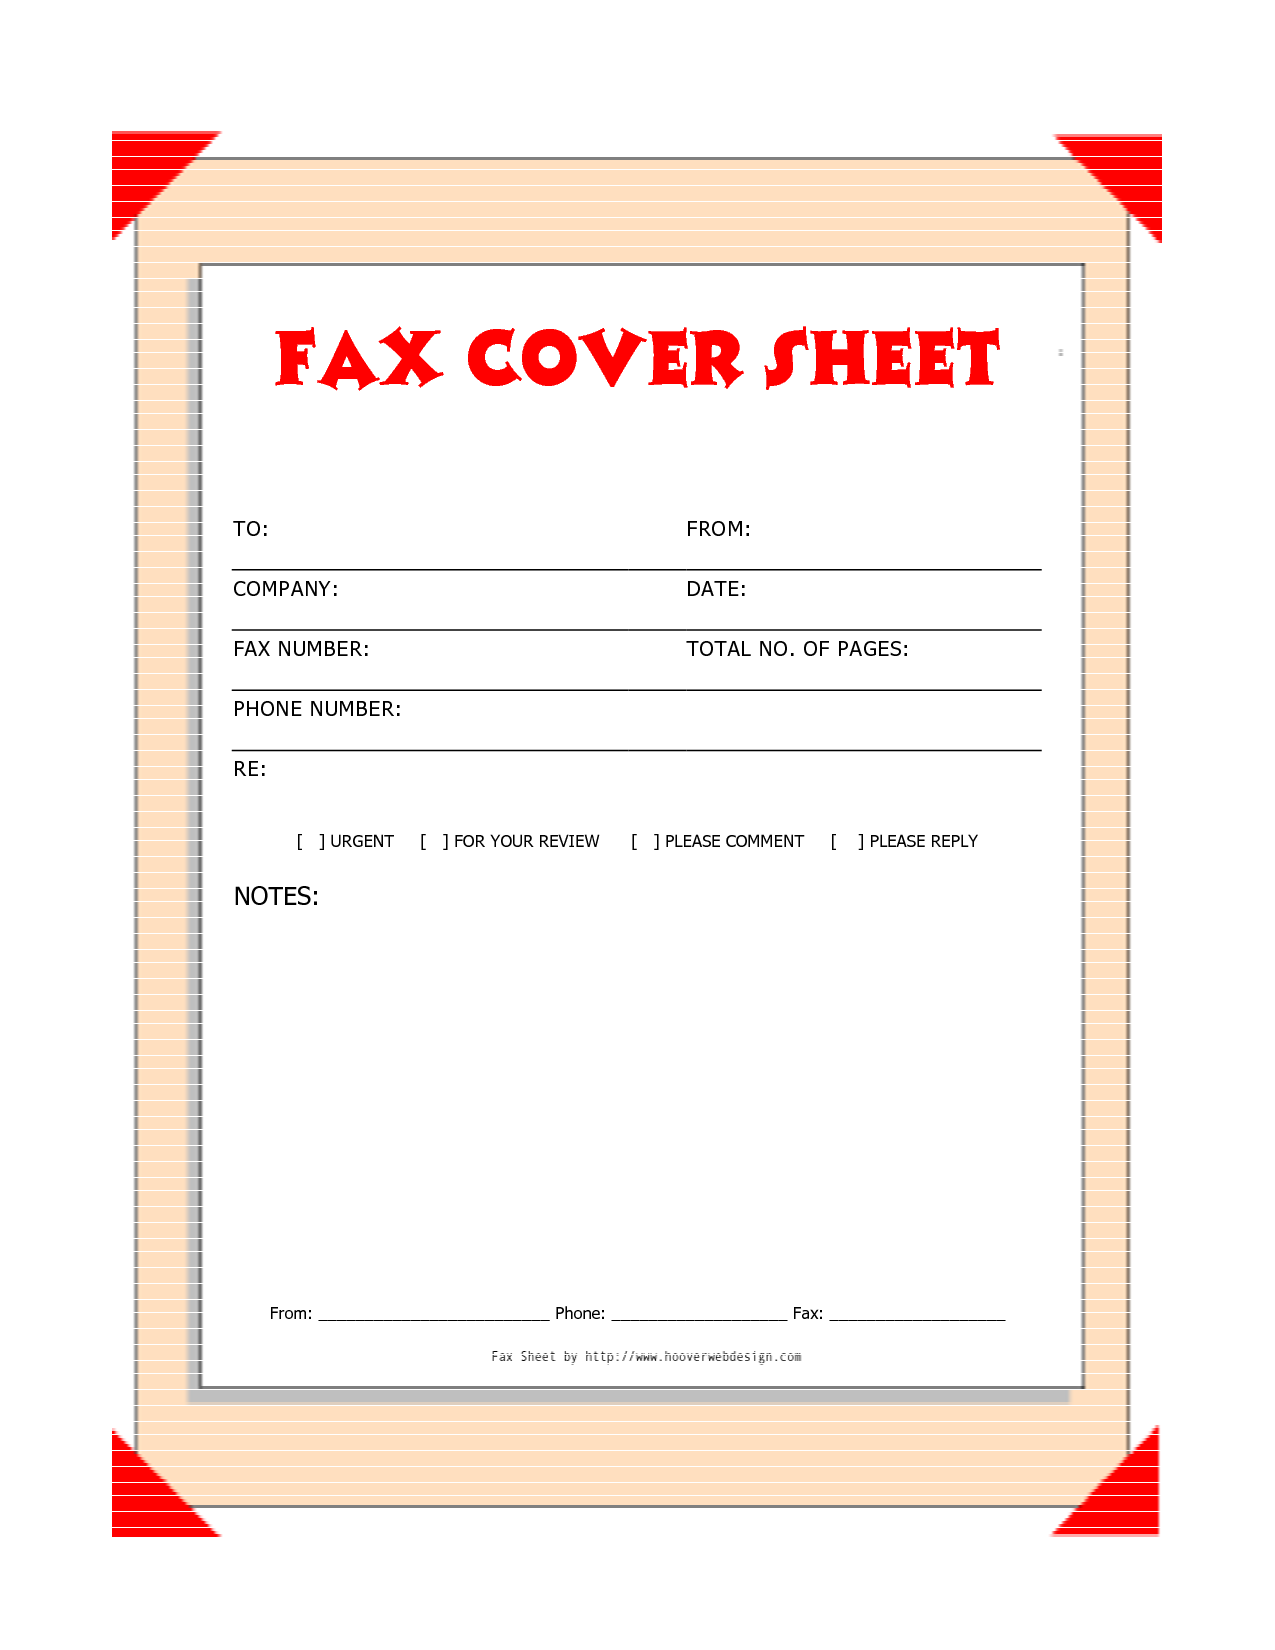 free downloads fax covers sheets free printable fax cover sheet template red download as pdf